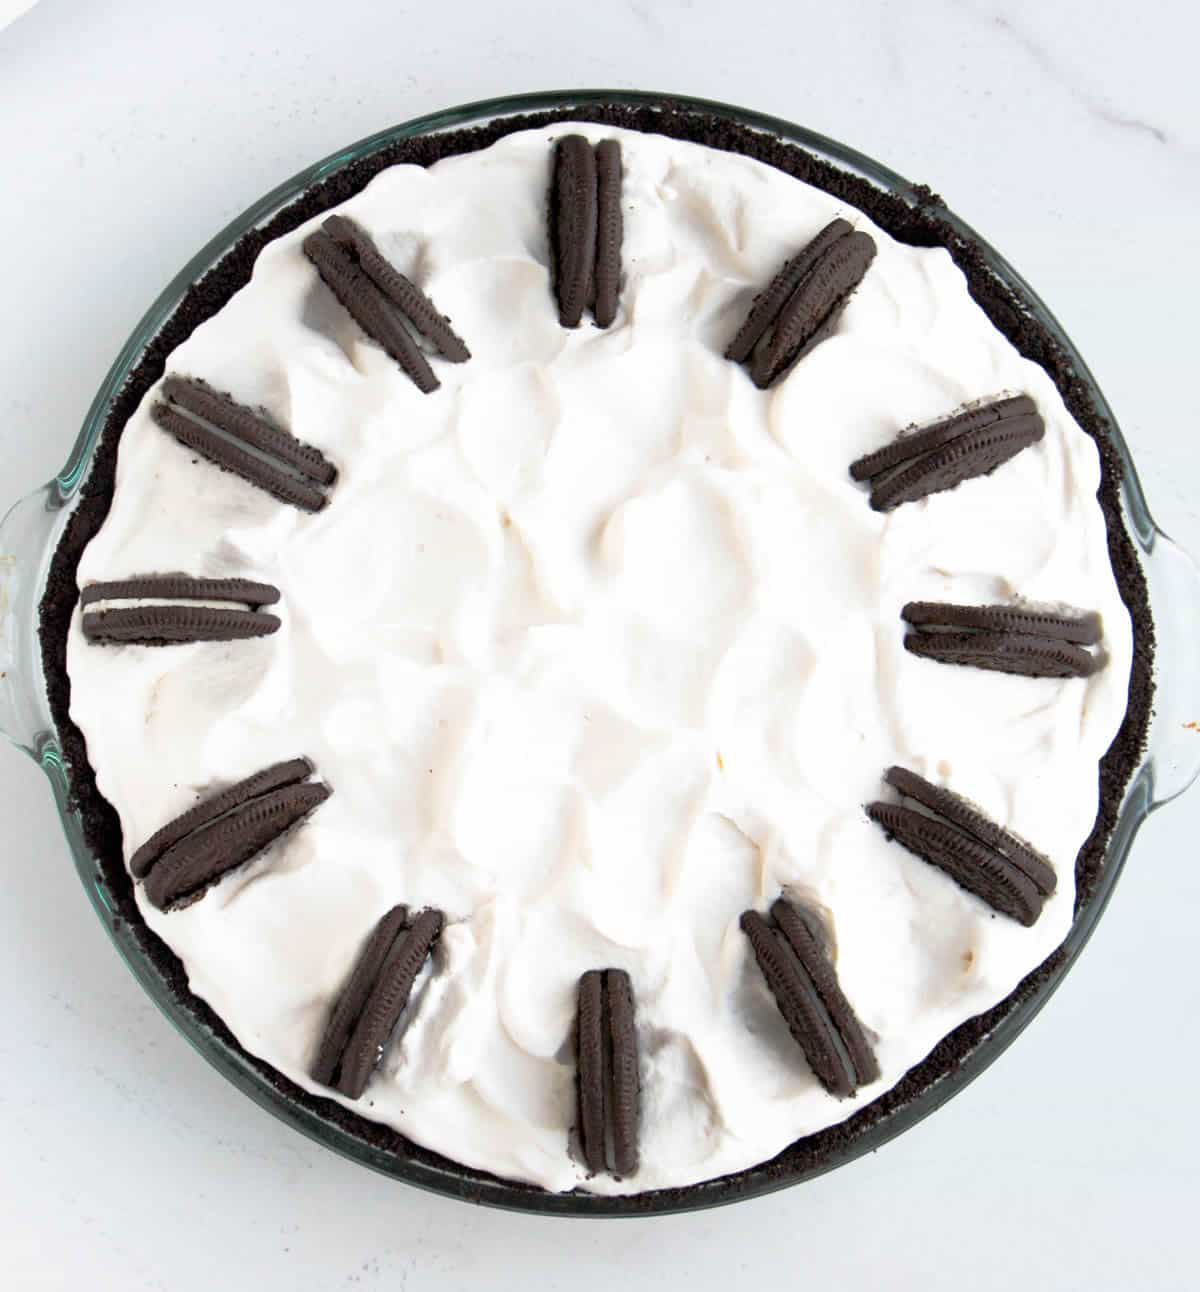 Cookies 'n Irish Cream Cheesecake Pie. There's Irish cream in the cheesecake, the ganache and the whipped cream. Cookies 'n cream just got more fun!